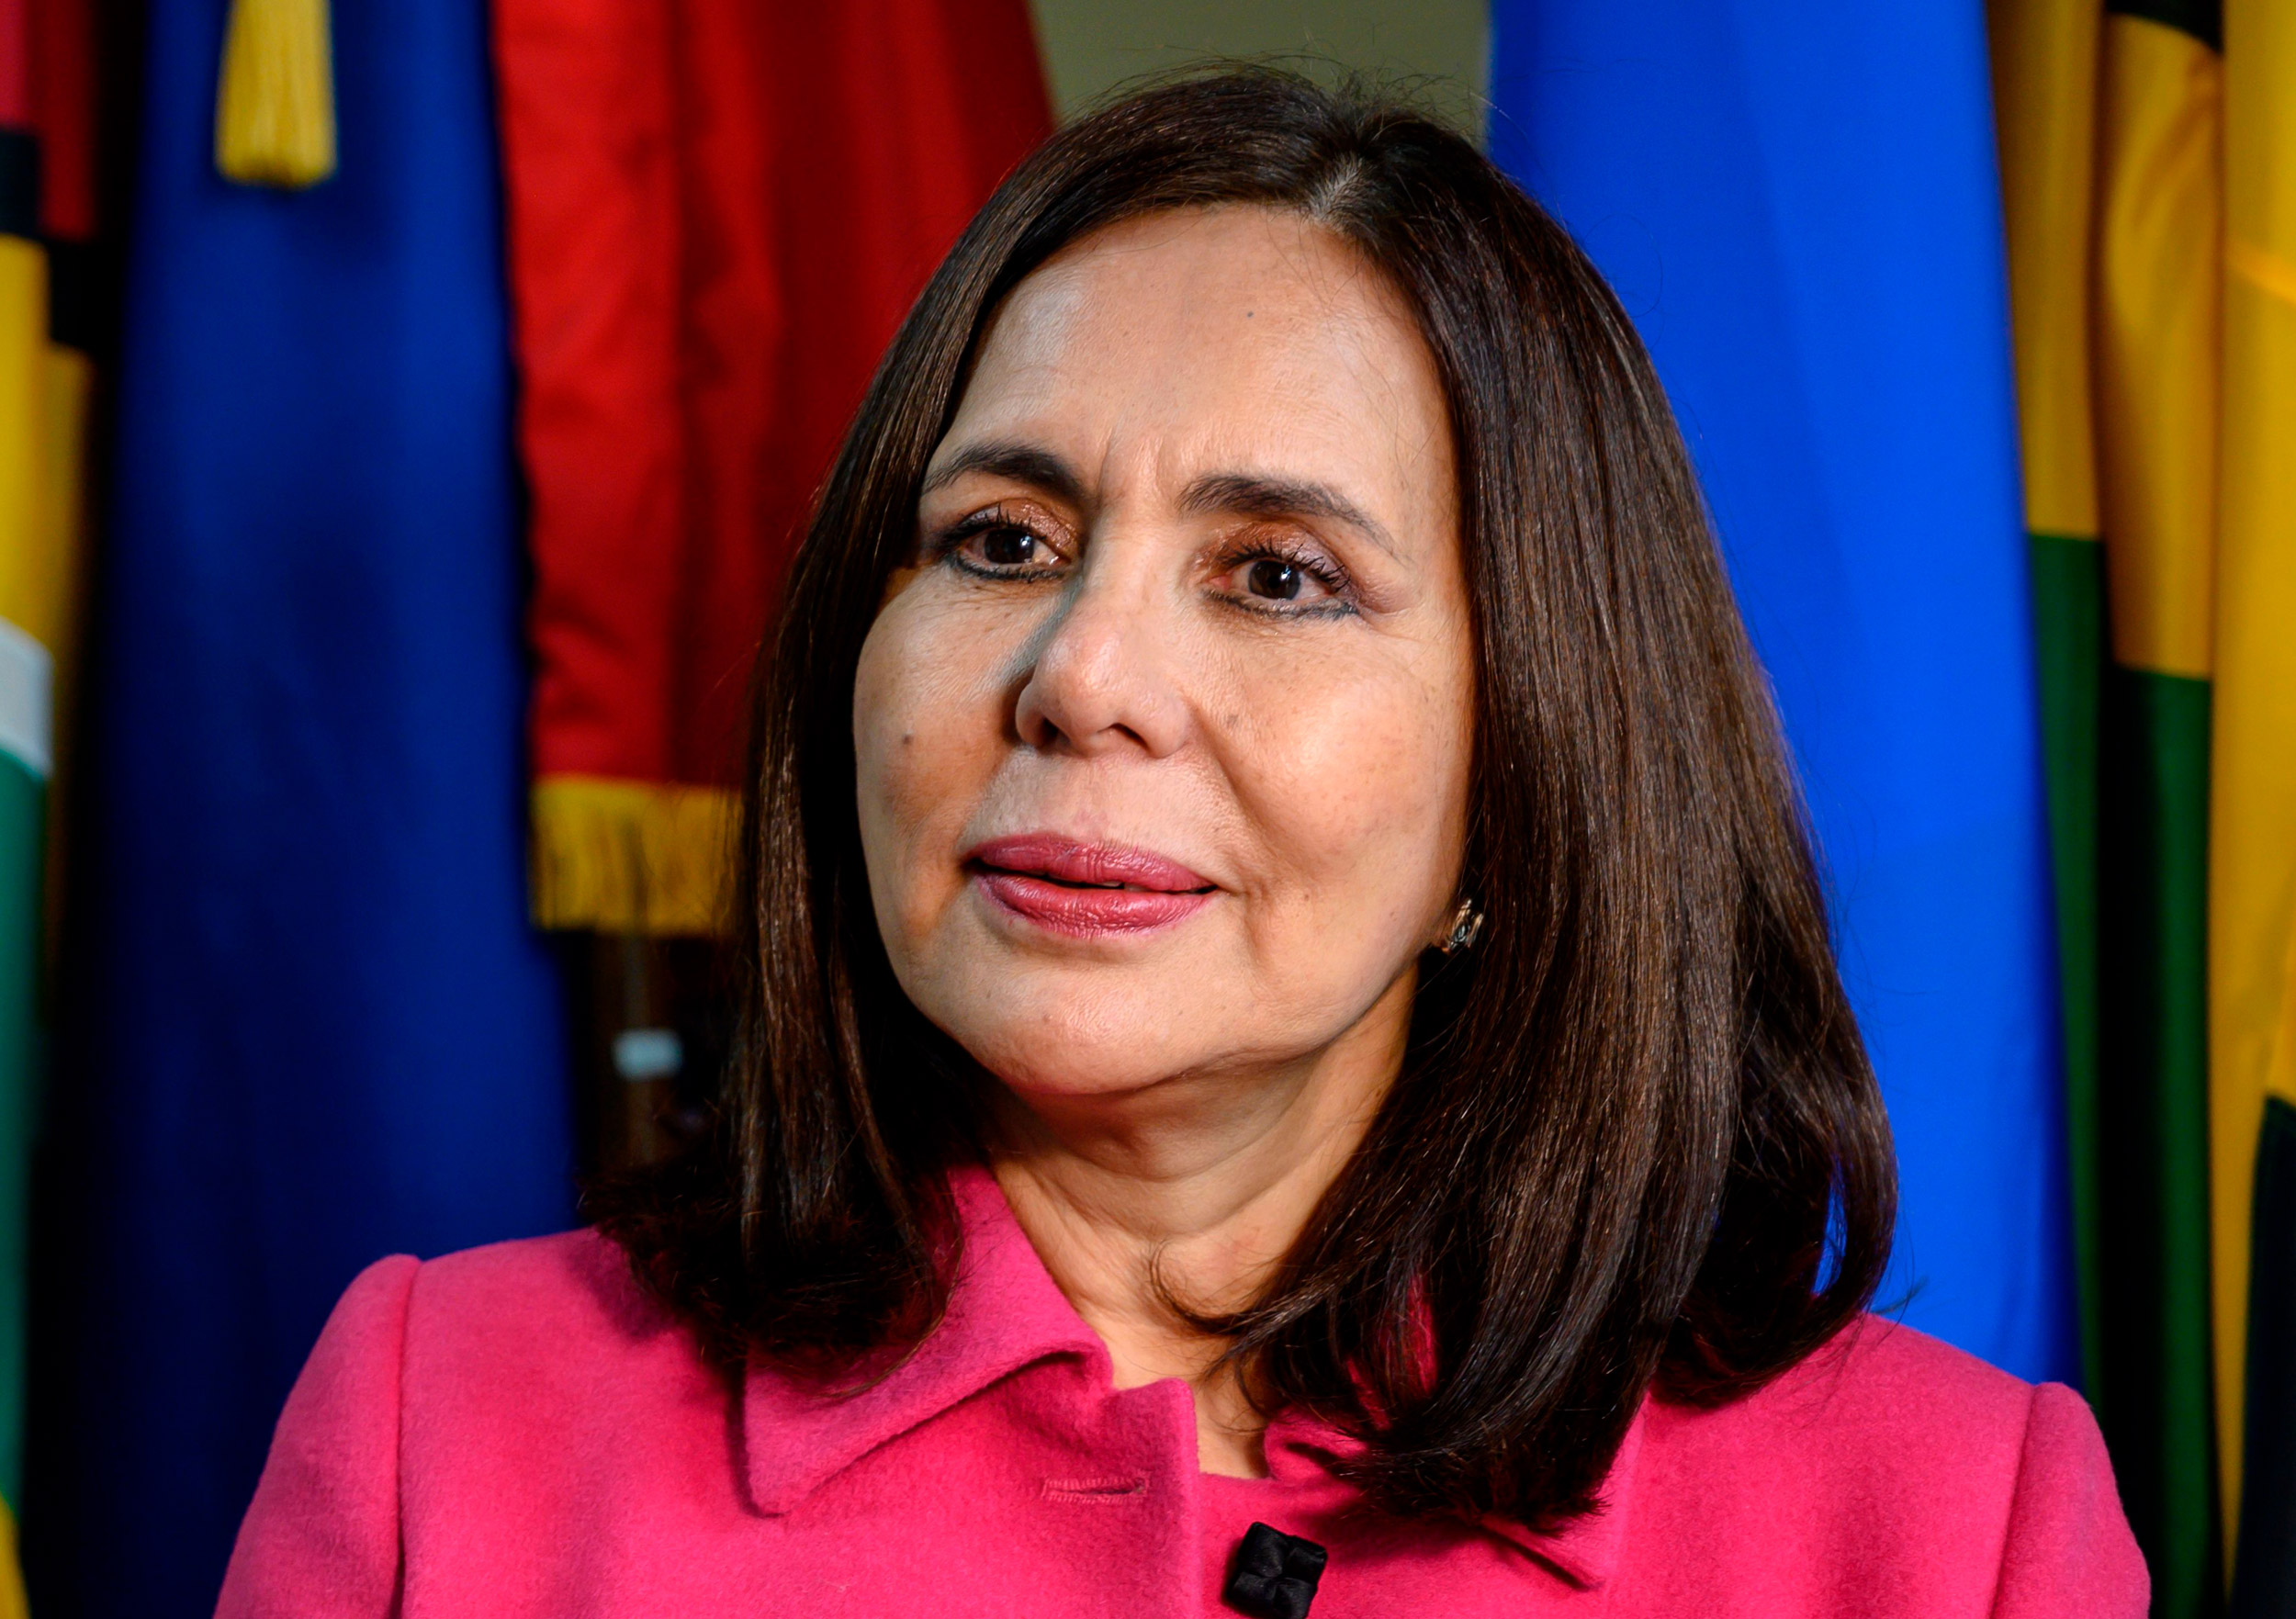 Bolivian Foreign Minister Karen Longaric speaks during an interview at the Organization of American State in Washington, DC on January 23.